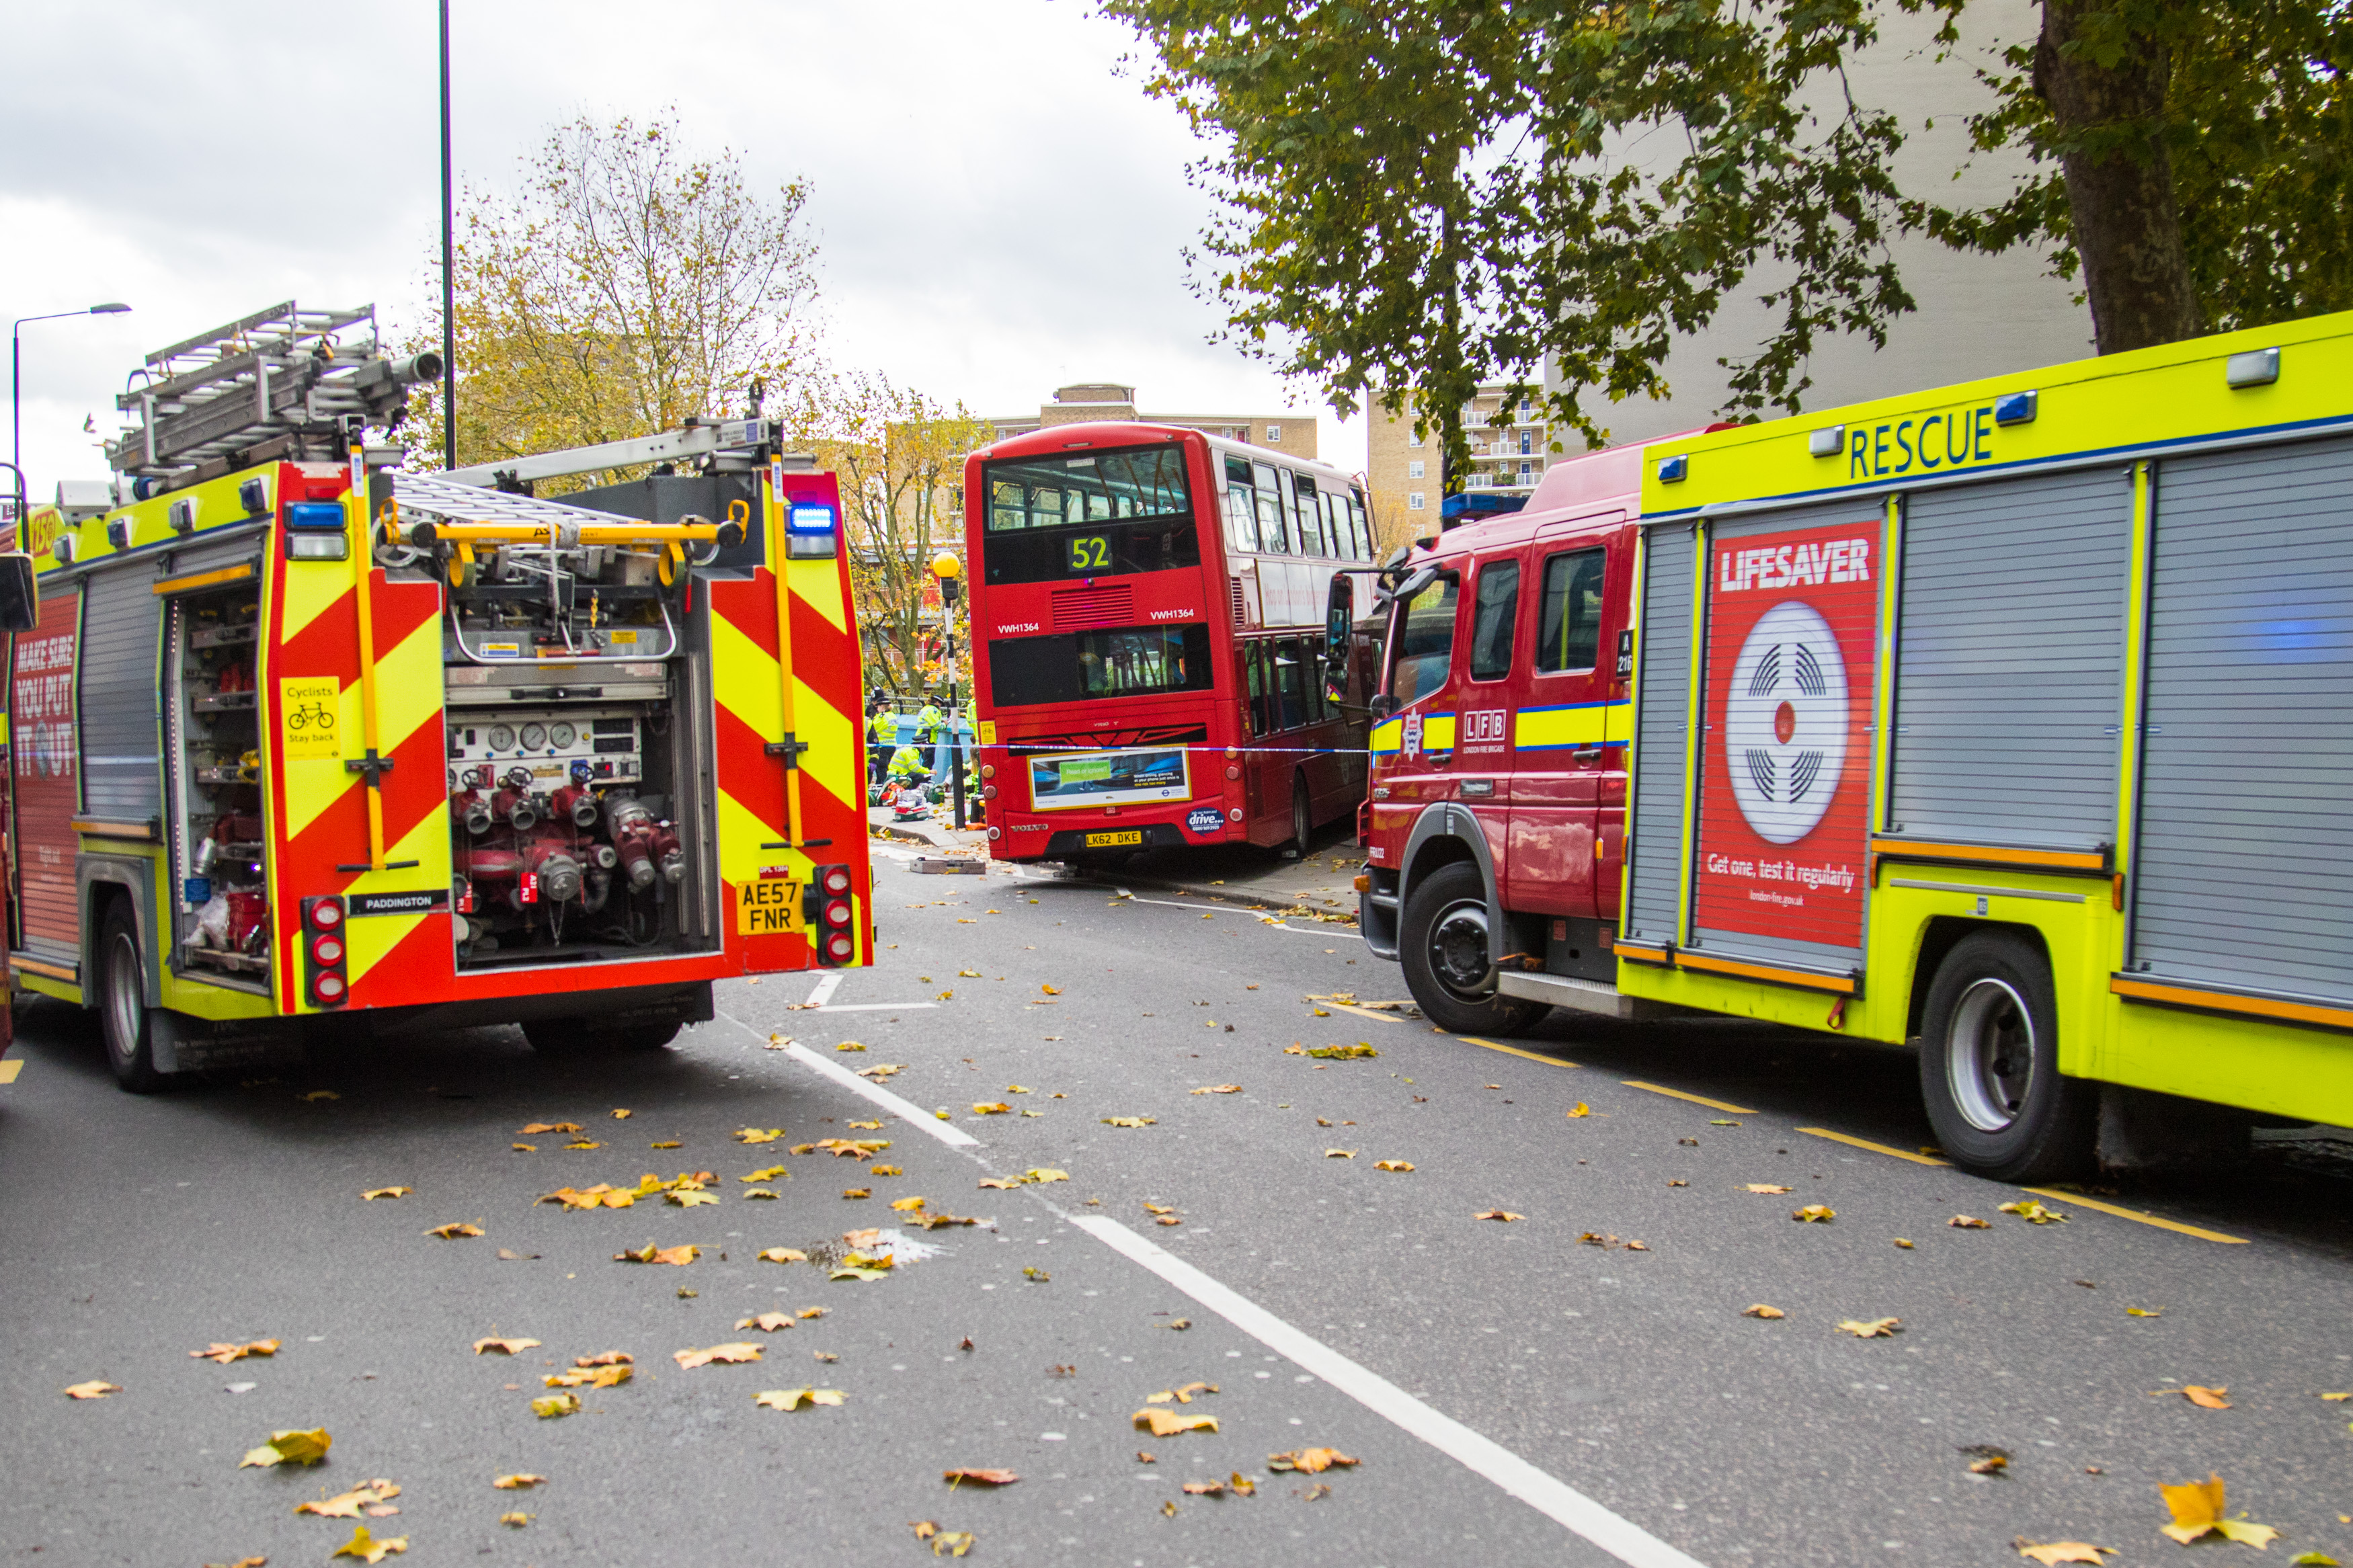 Bus Crash in London's Ladbroke Grove